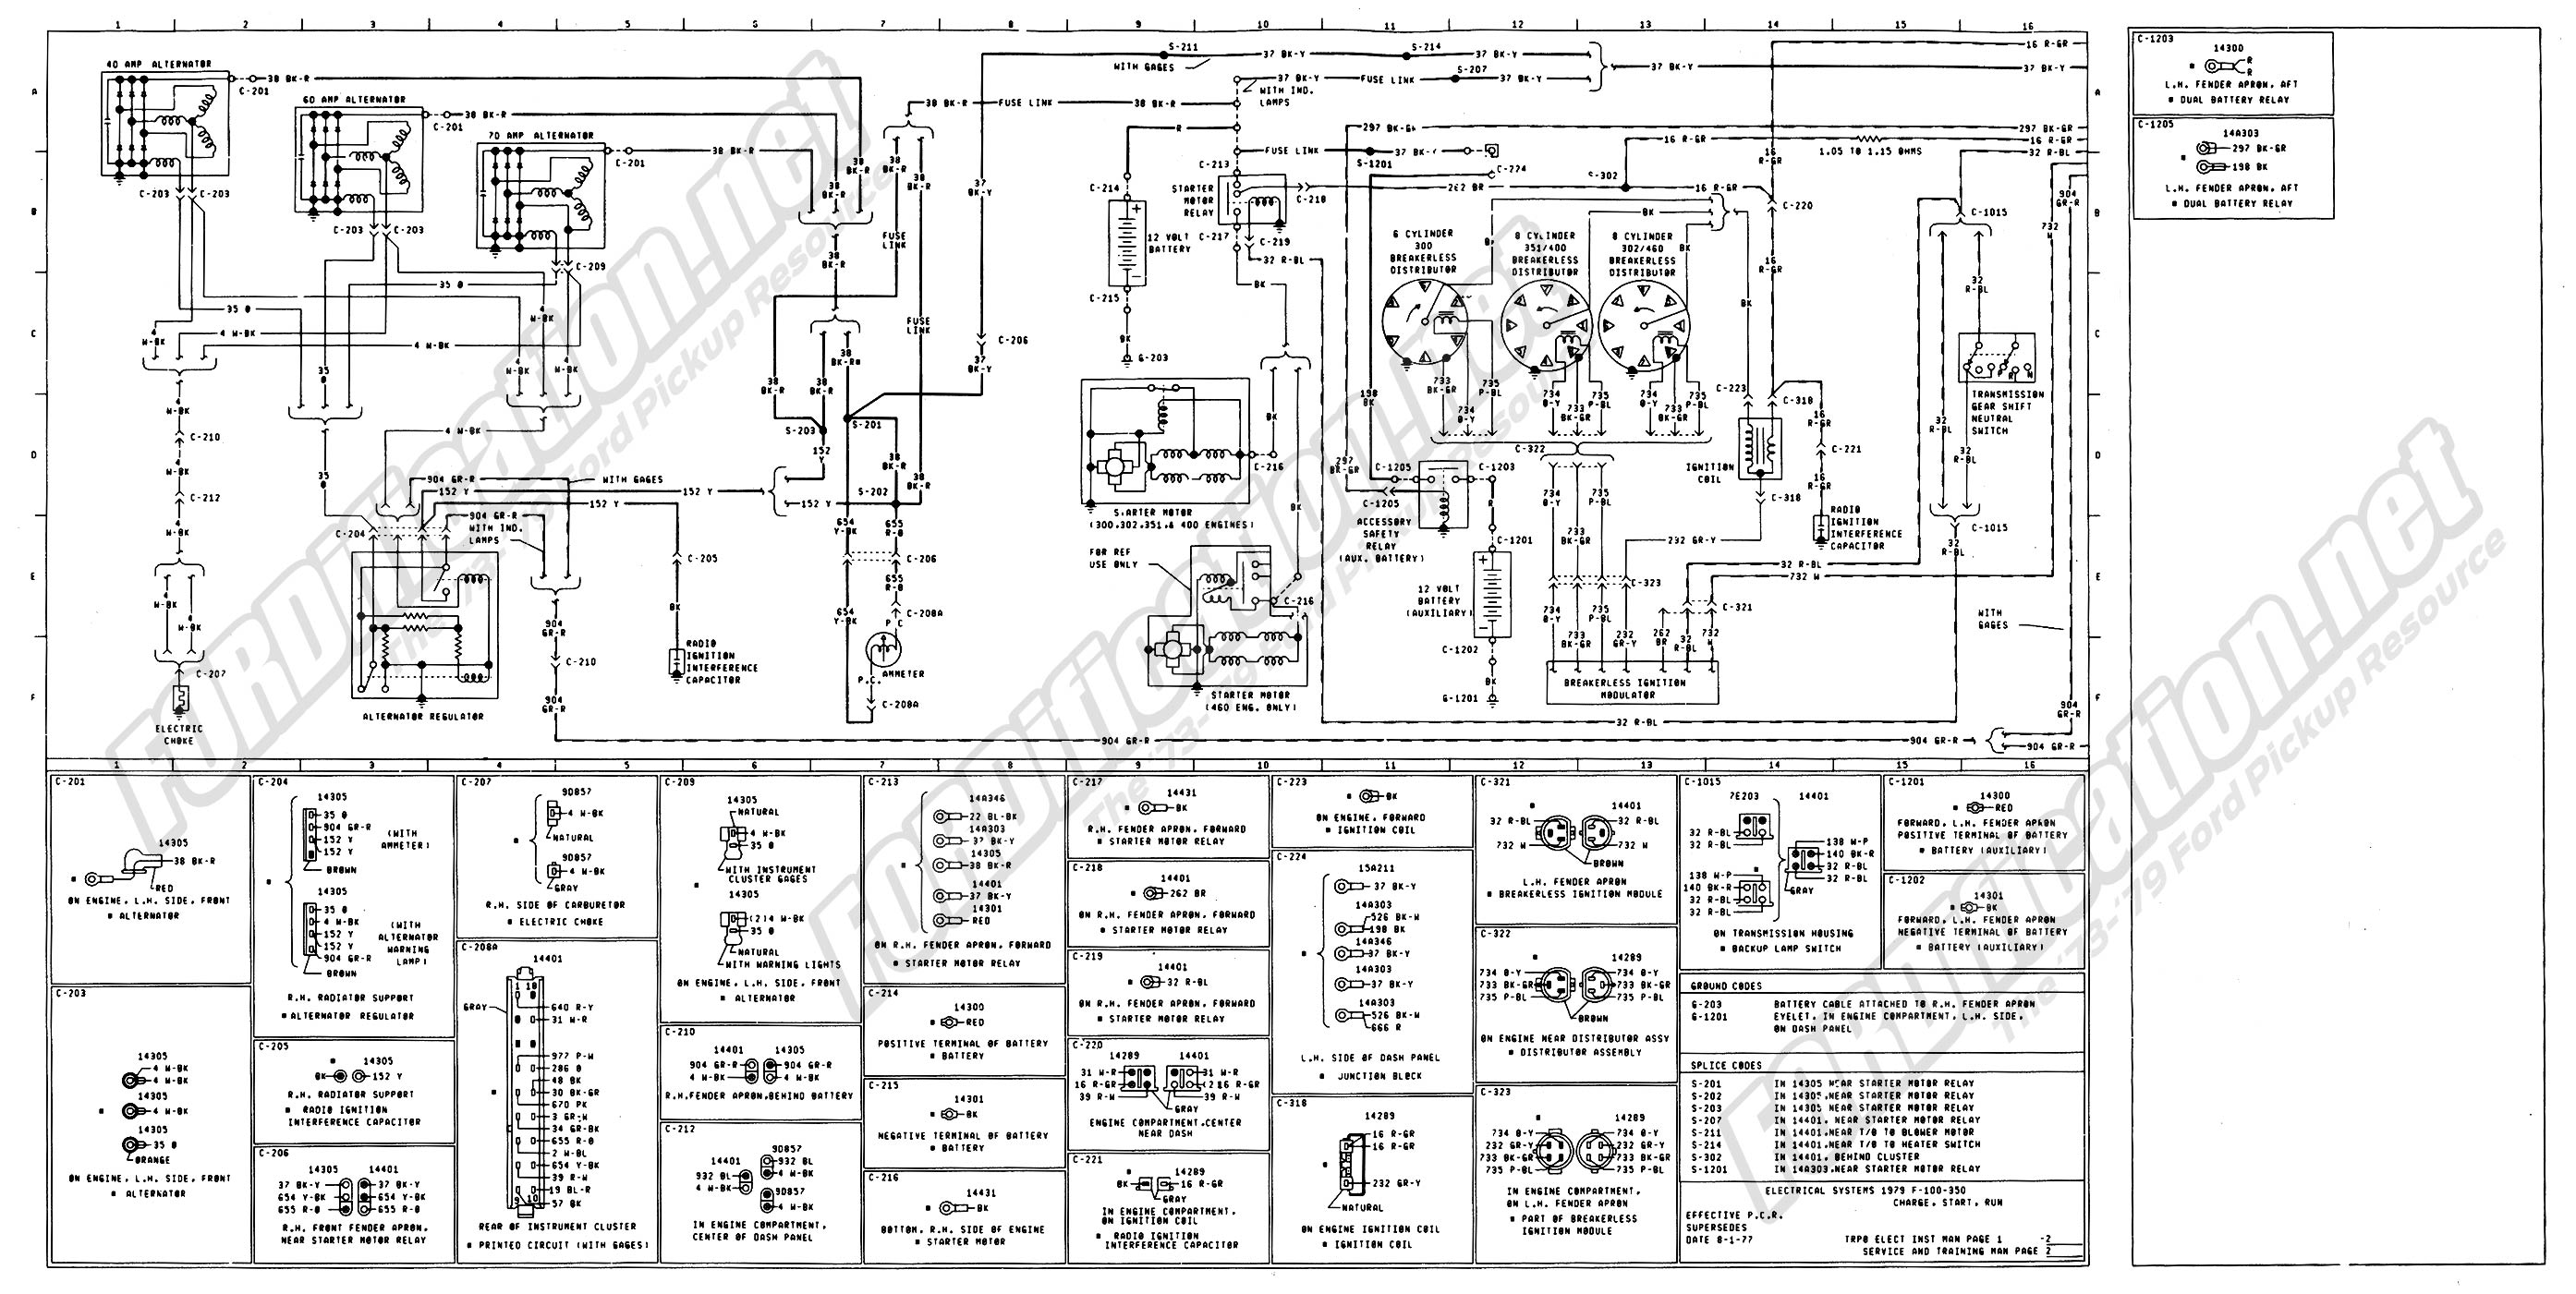 Stupendous 77 Gmc Dual Fuel Wire Diagram Wiring Library Wiring Cloud Inklaidewilluminateatxorg